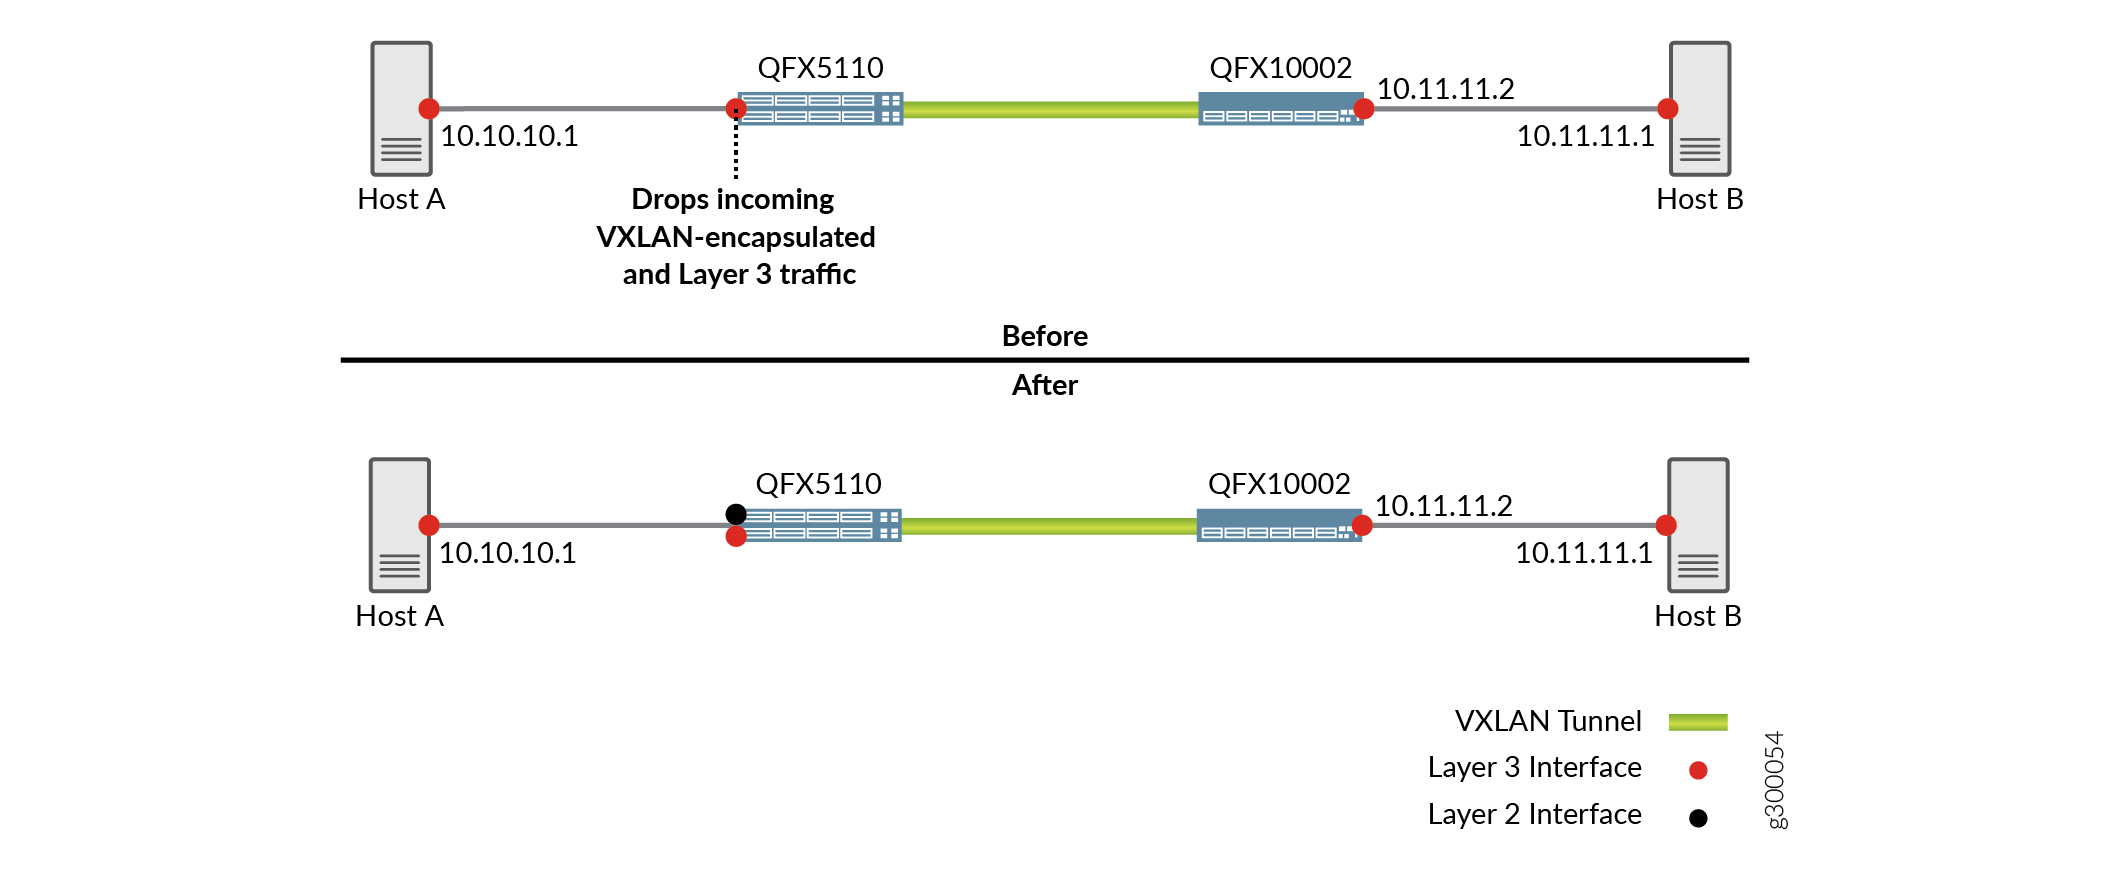 Results When Routing Traffic Between a VXLAN and a Layer 3 Logical Interface Is Disabled (Before) and Enabled (After)